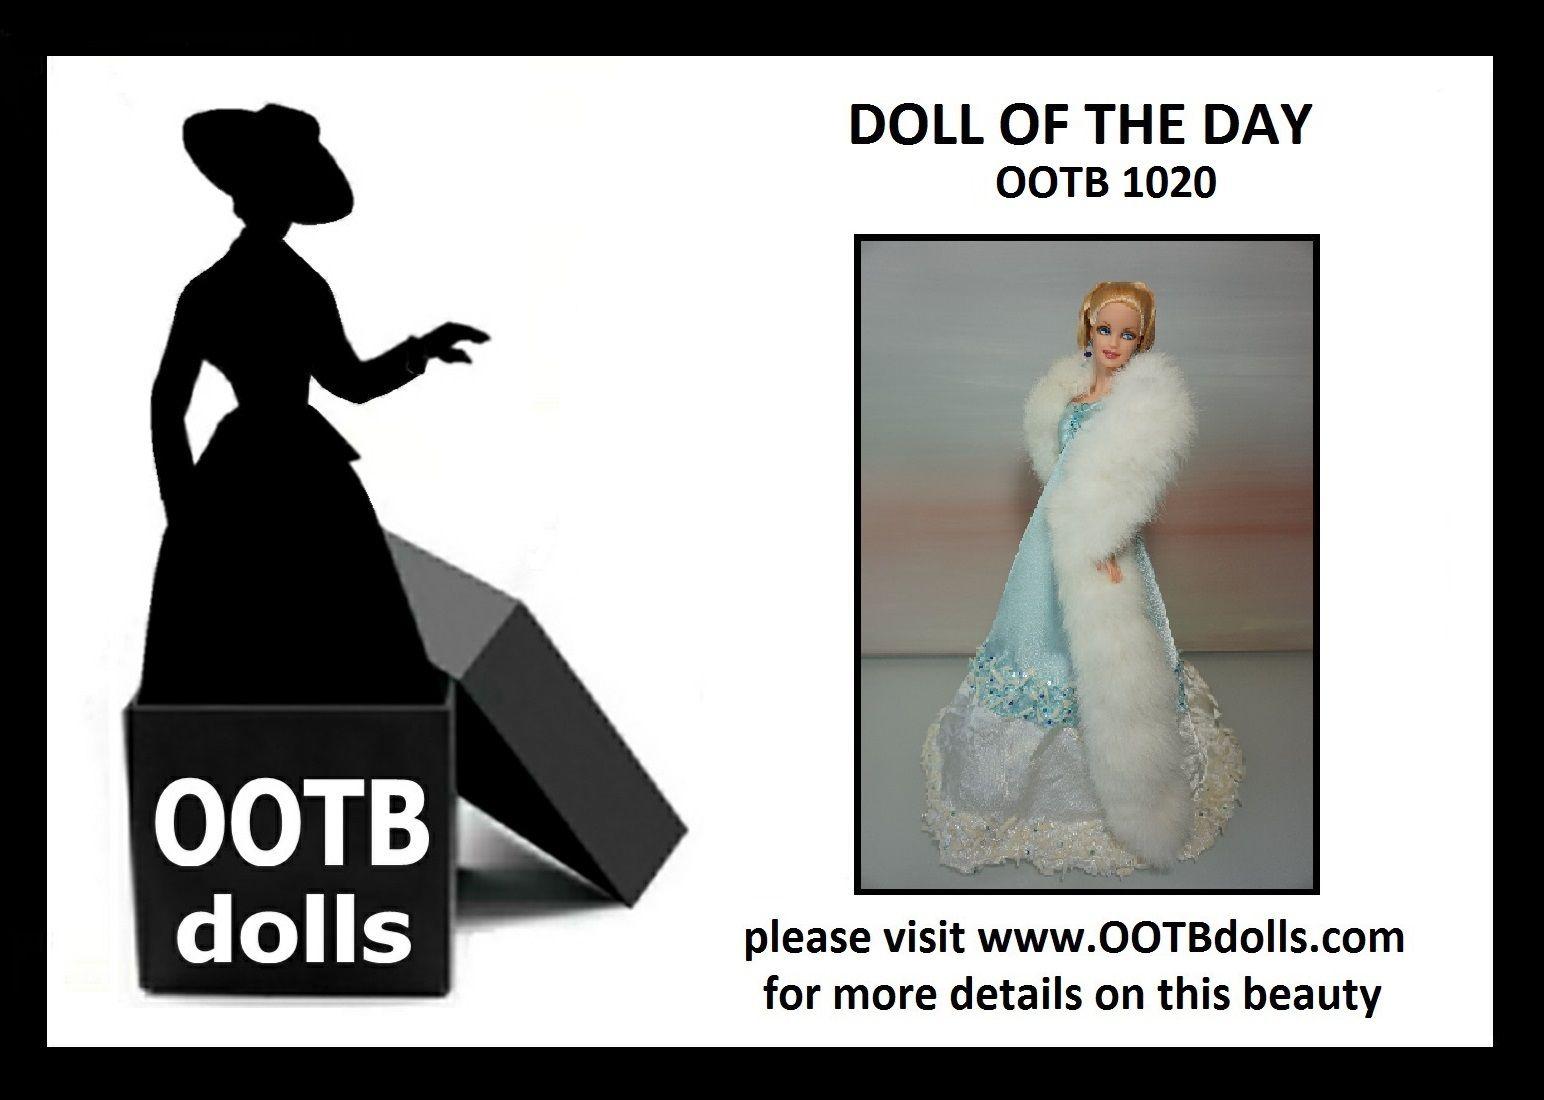 """06.20.14 - Guess what theme the upcoming NBDCC Nashville is? """"Everyday is a Holiday"""", and this doll OOTB 1020 that we are previewing today is definitely in time to bring winter to the convention with her fabulous fur! Enjoy!  Please visit our website for more details on this beauty! www.OOTBdolls.com"""